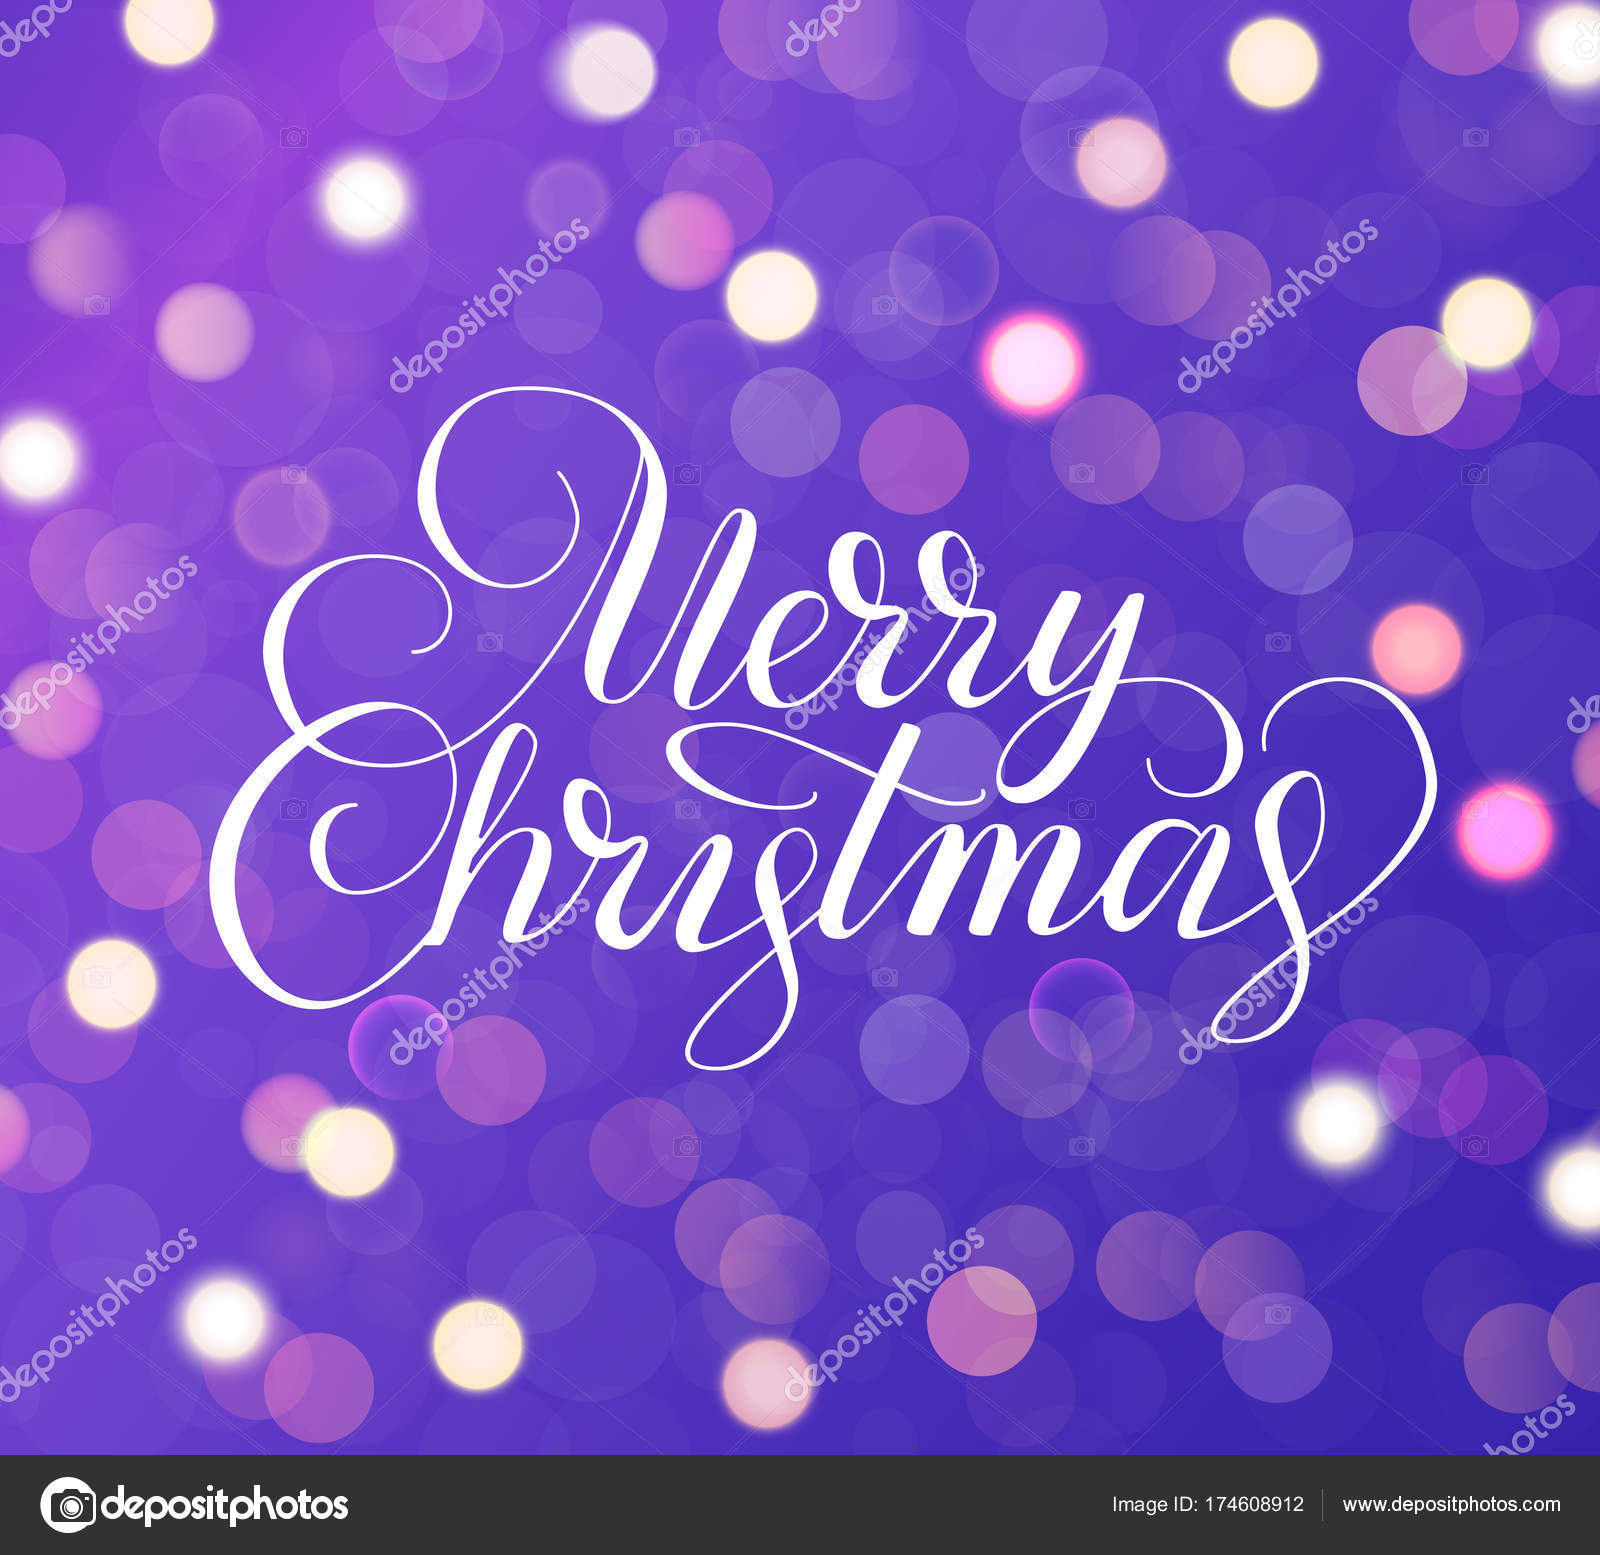 Merry christmas text holiday greetings quote purple background purple background with sparkling glowing lights bokeh effect holiday greetings quote great for christmas and new year cards party posters gift tags m4hsunfo